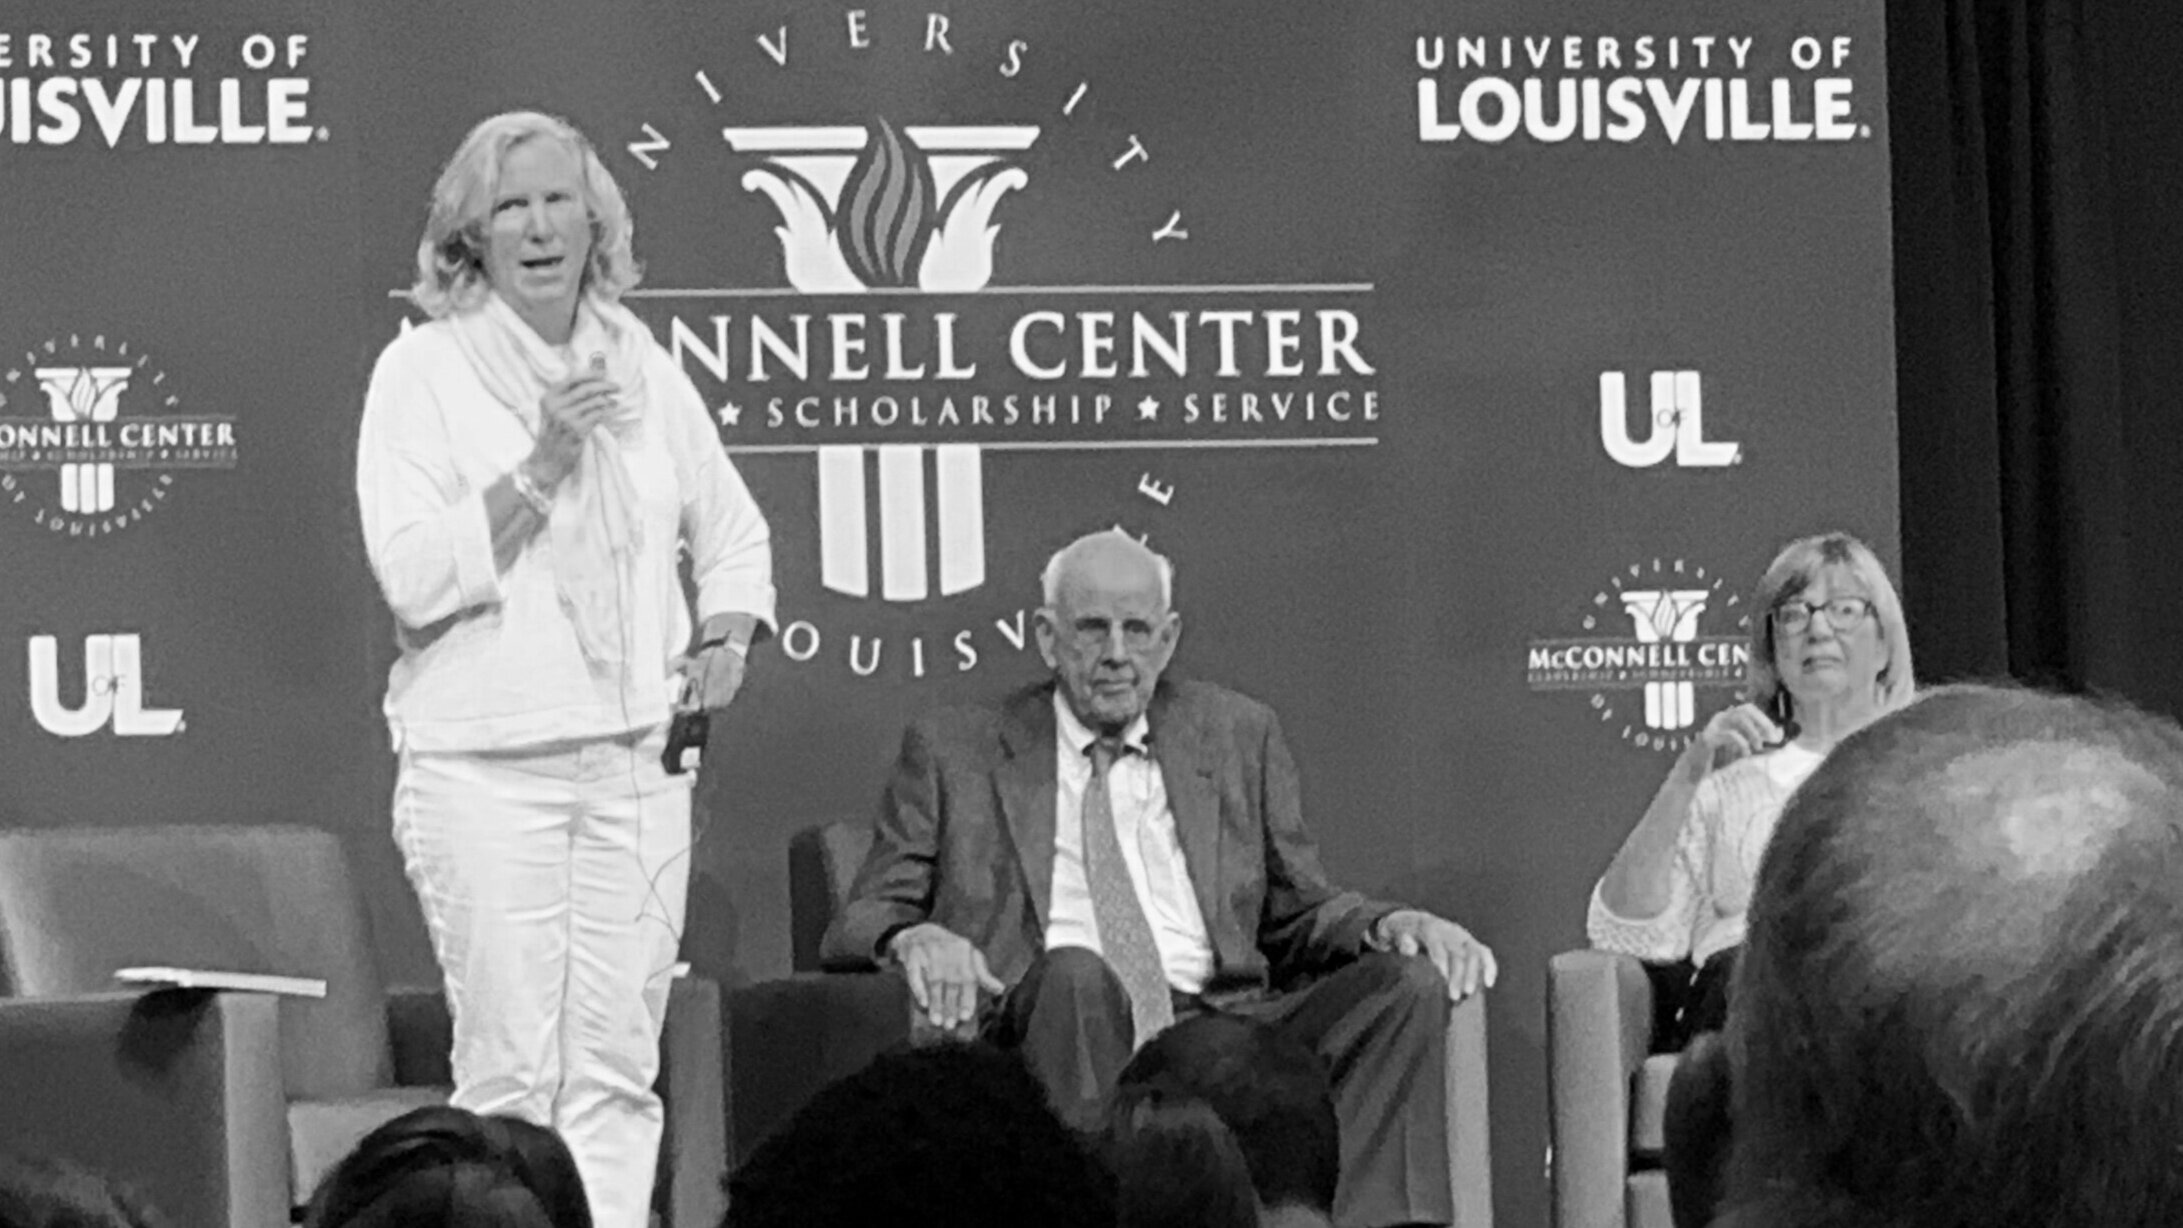 A conversation with Wendell Berry, Mary Berry Smith, and Kate Dalton Boyer. (Photo by Scott P. Richert)